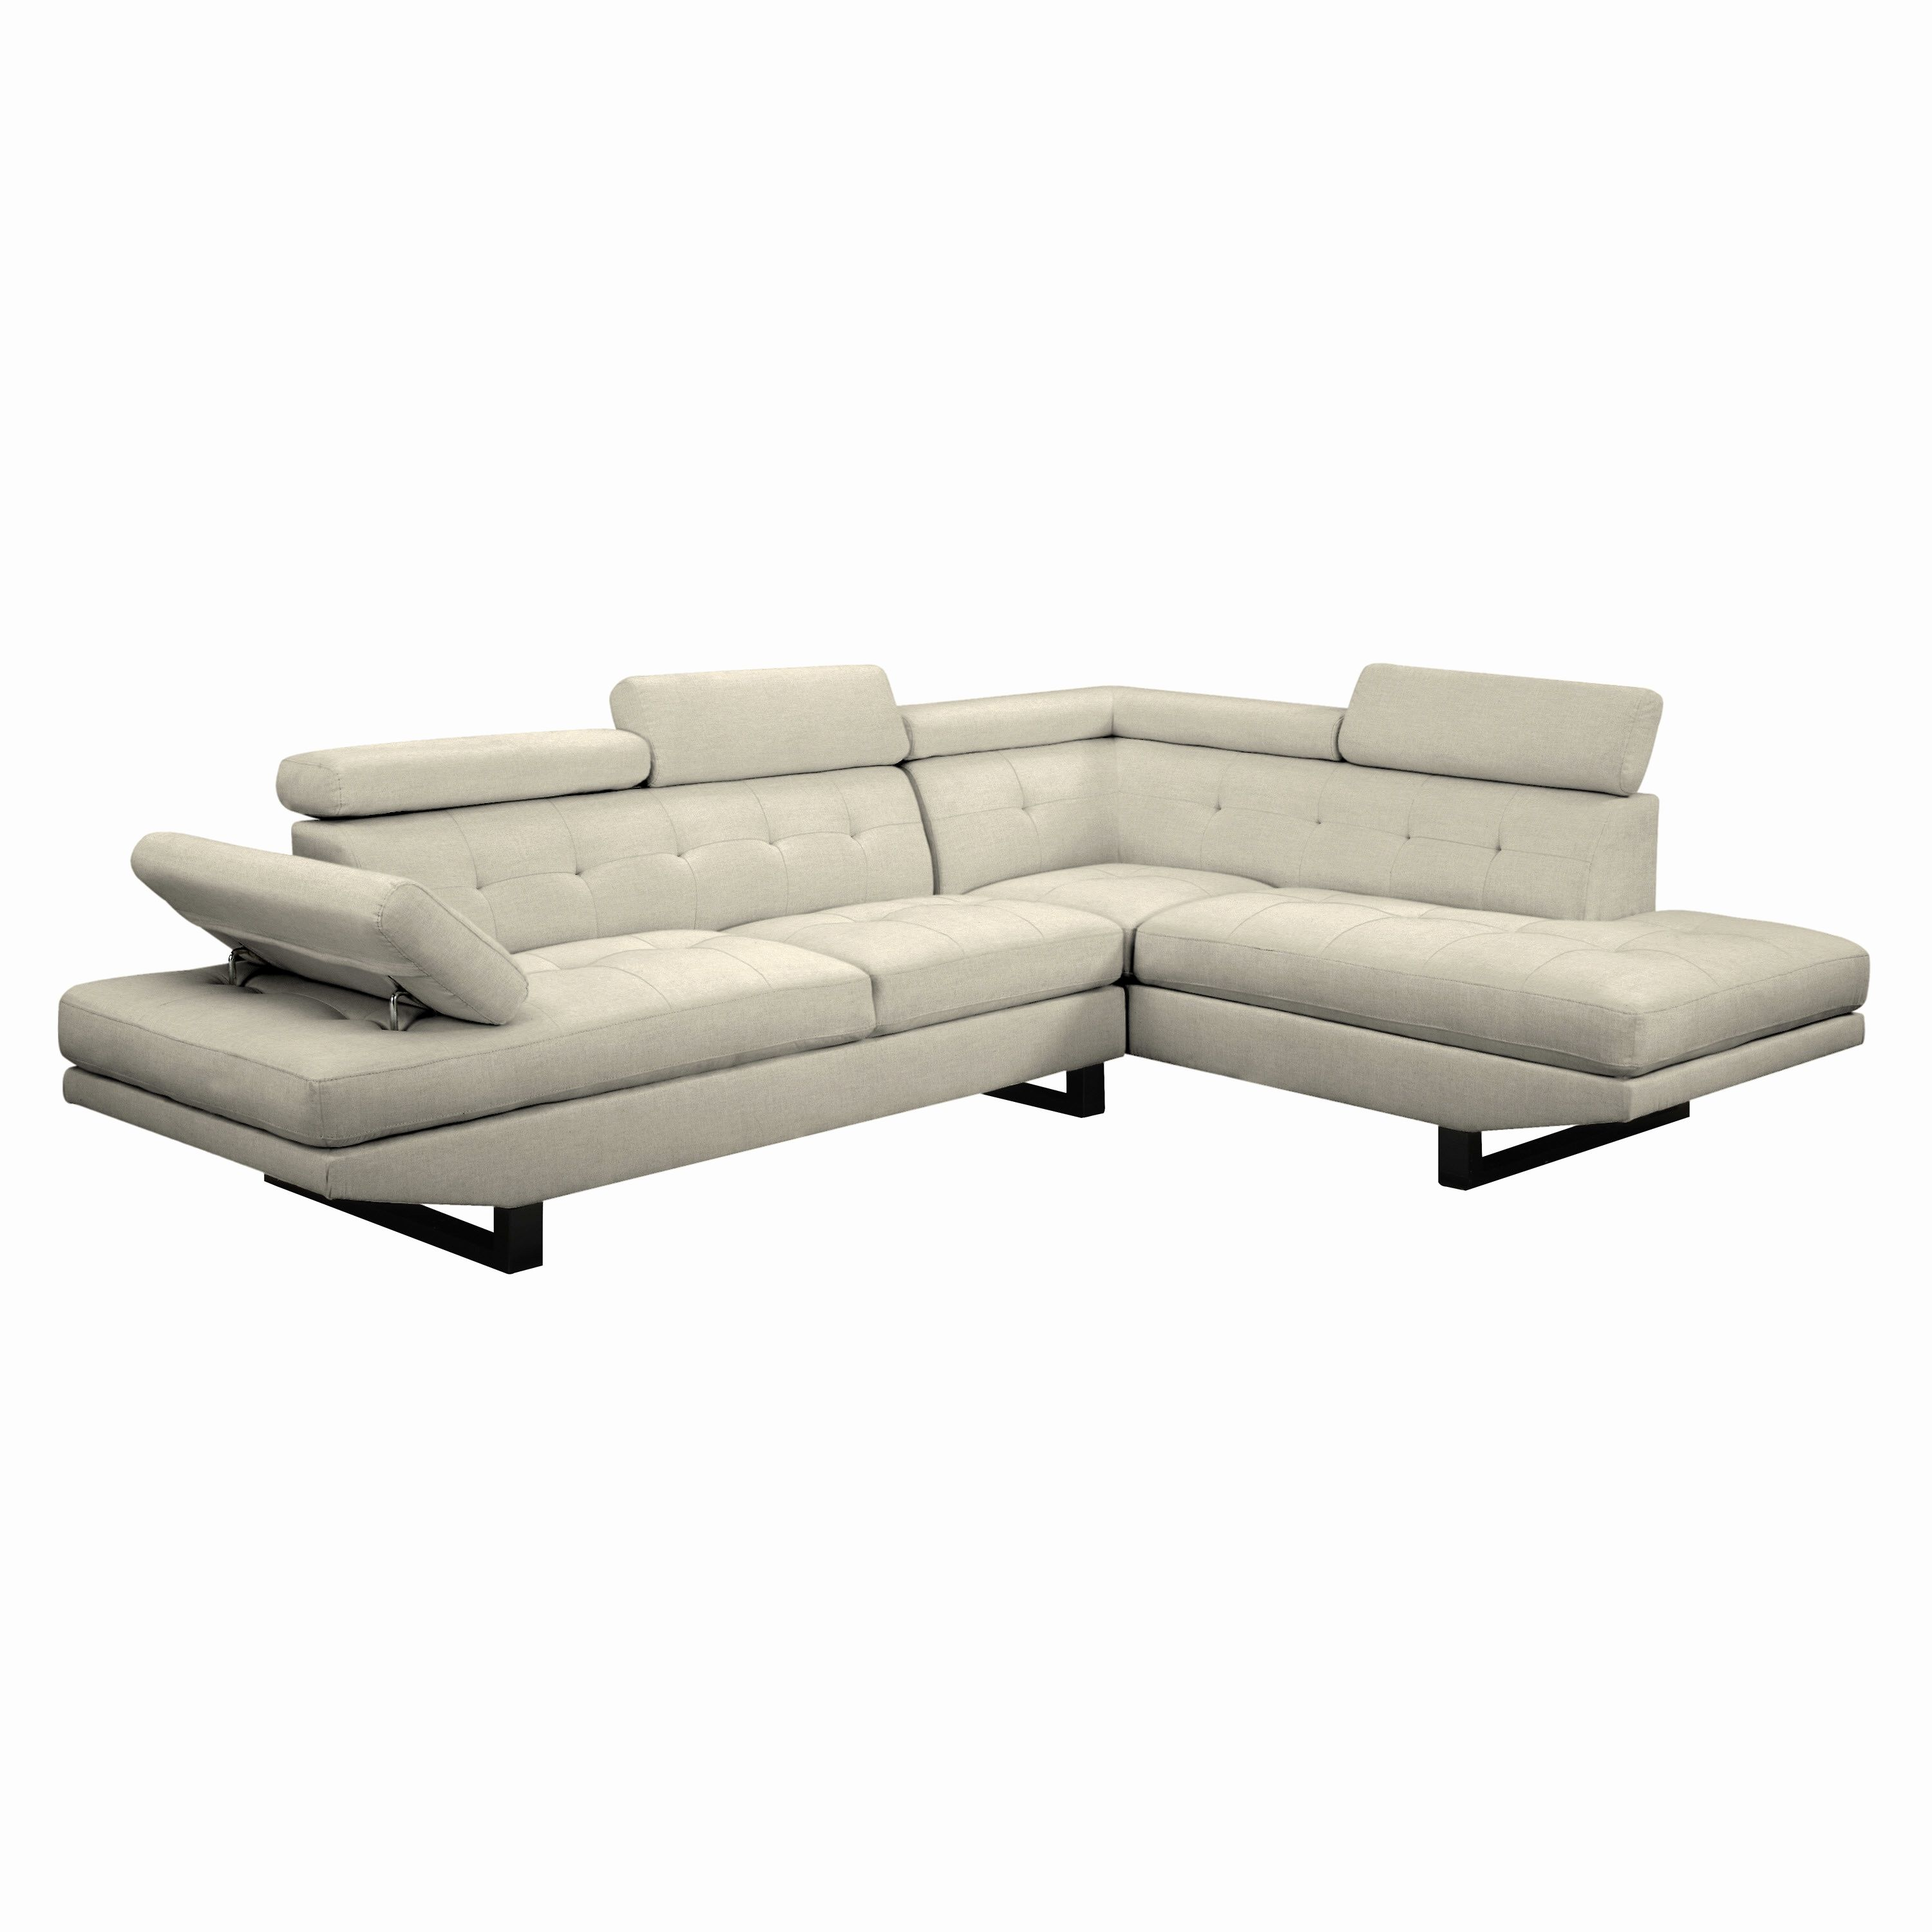 Beautiful Handy Living Convert A Couch Sleeper Sofa Shot Handy Living Convert A Couch Sleeper Sofa Fresh Handy Li With Images Sectional Sofa Couch Sectional